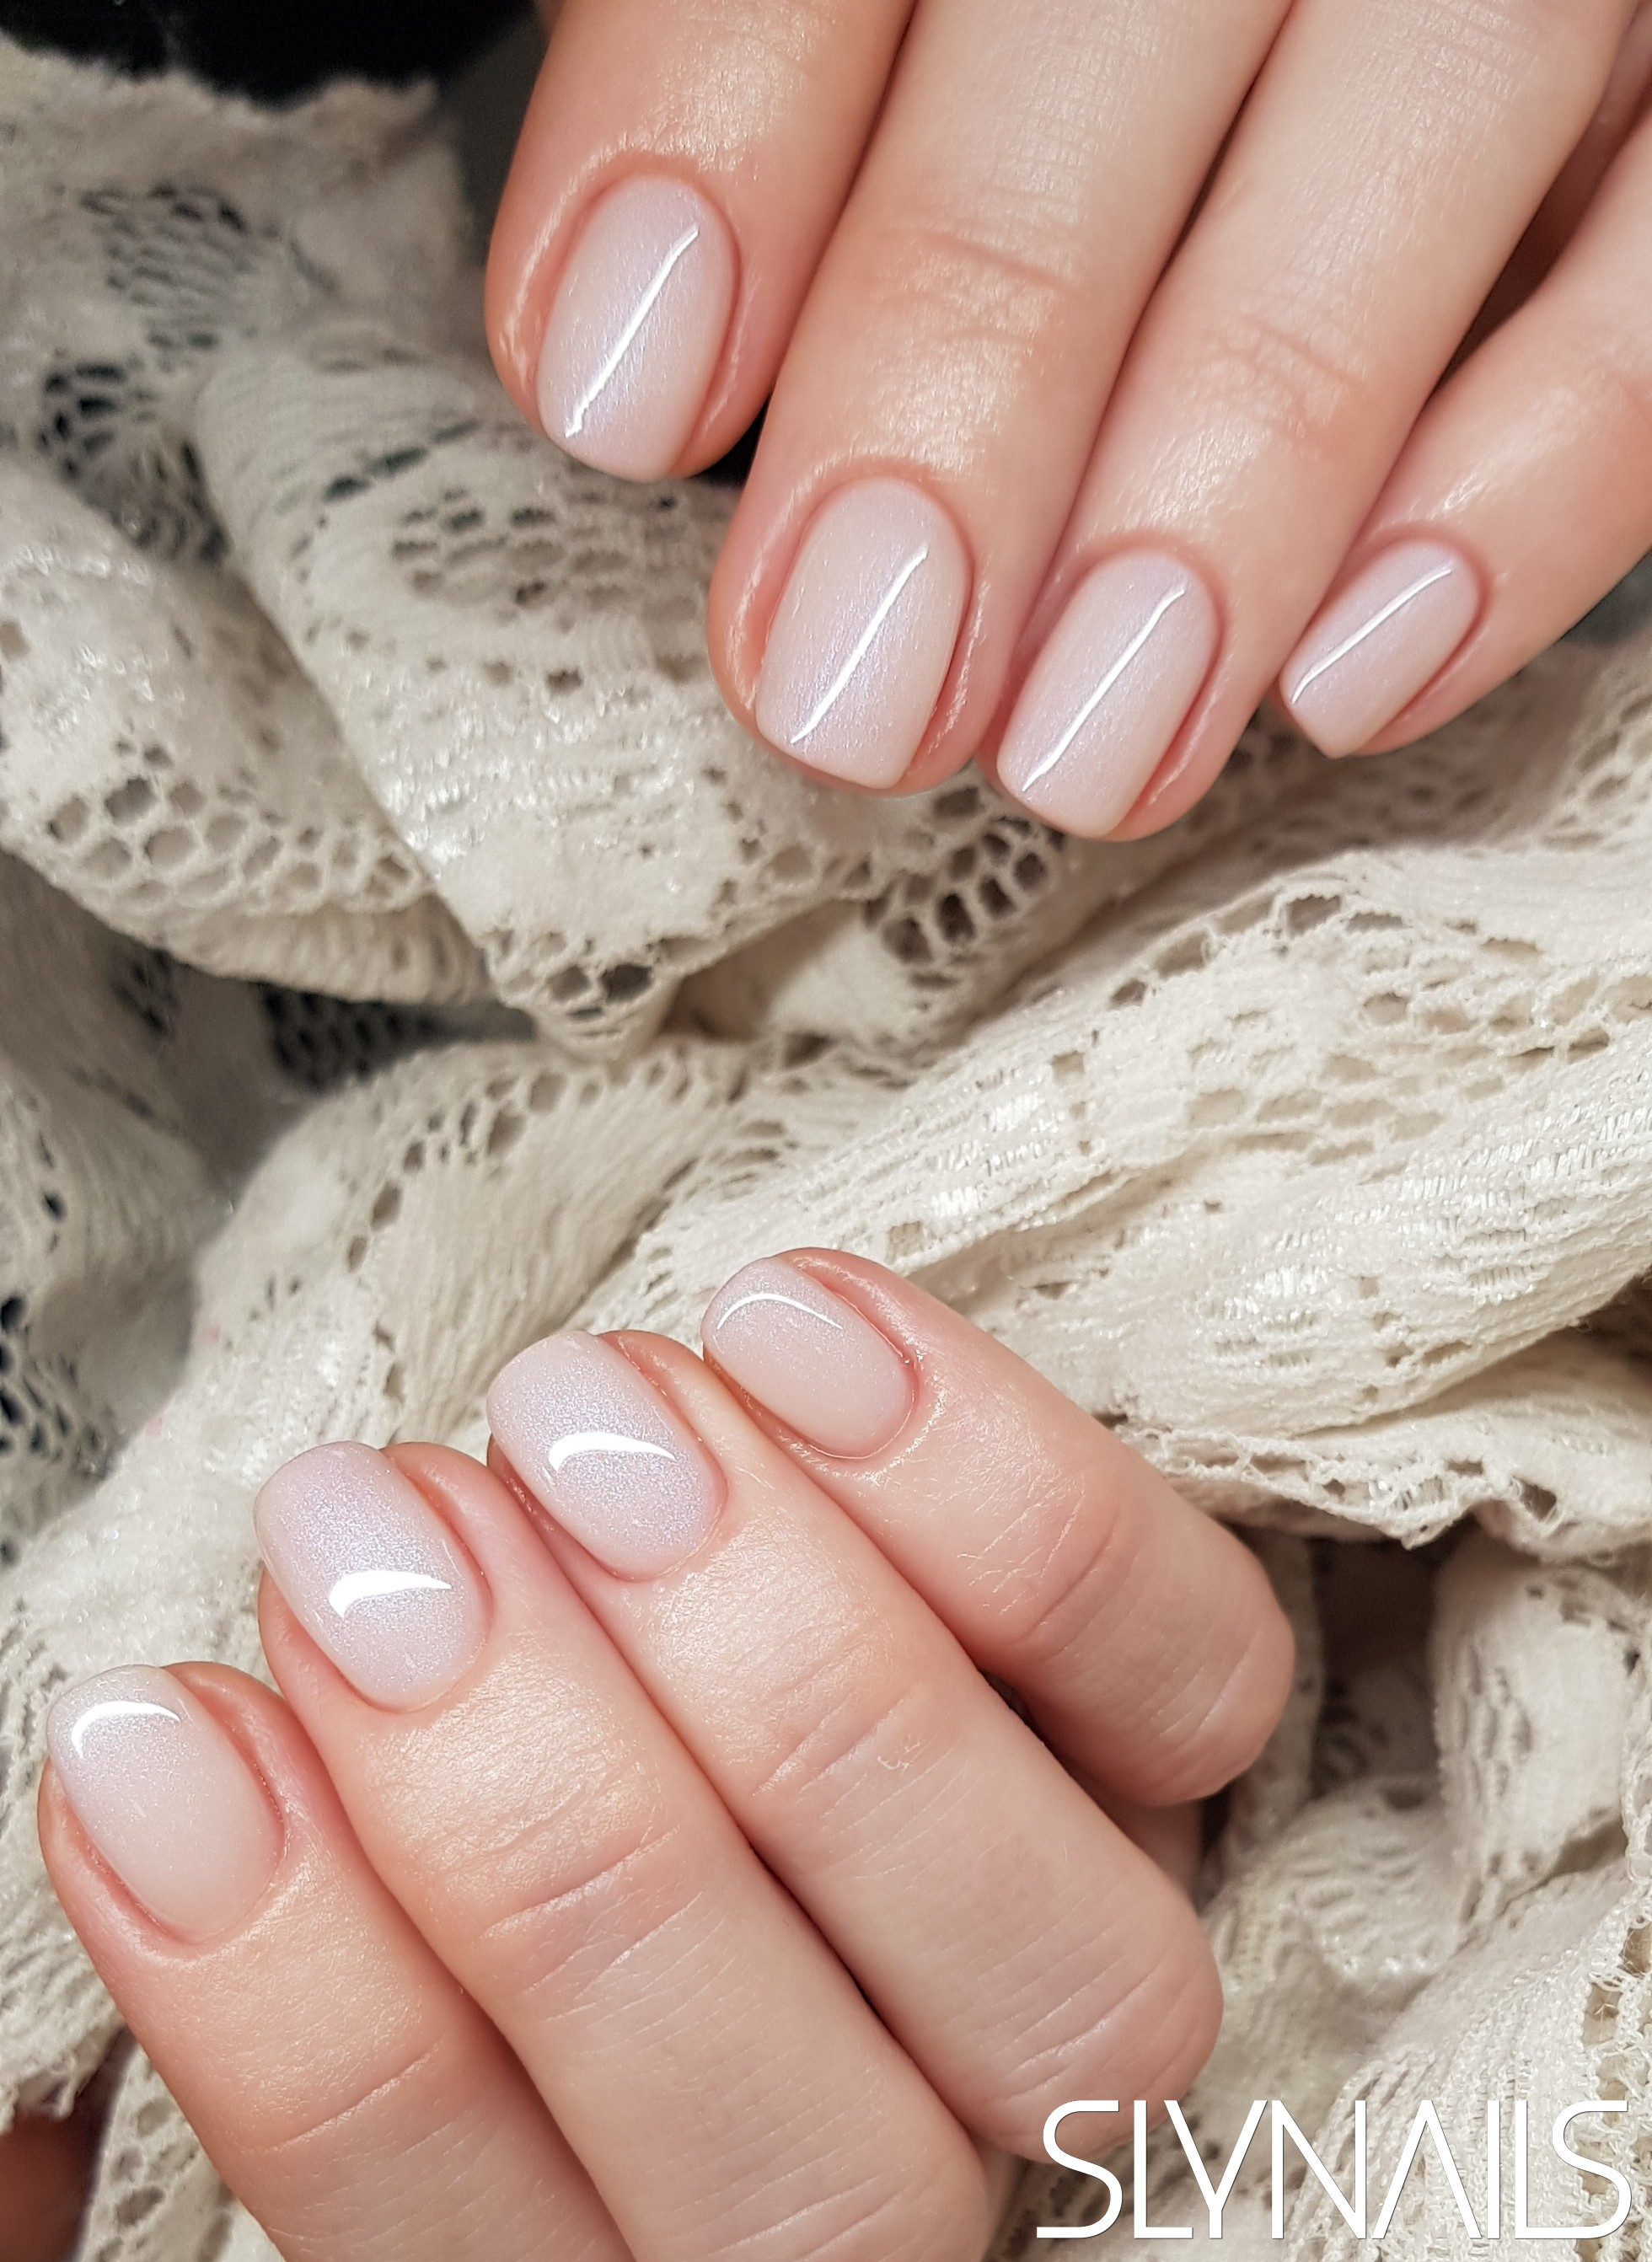 Gel-lac (gel polish), Milky white, One color, Without decoration